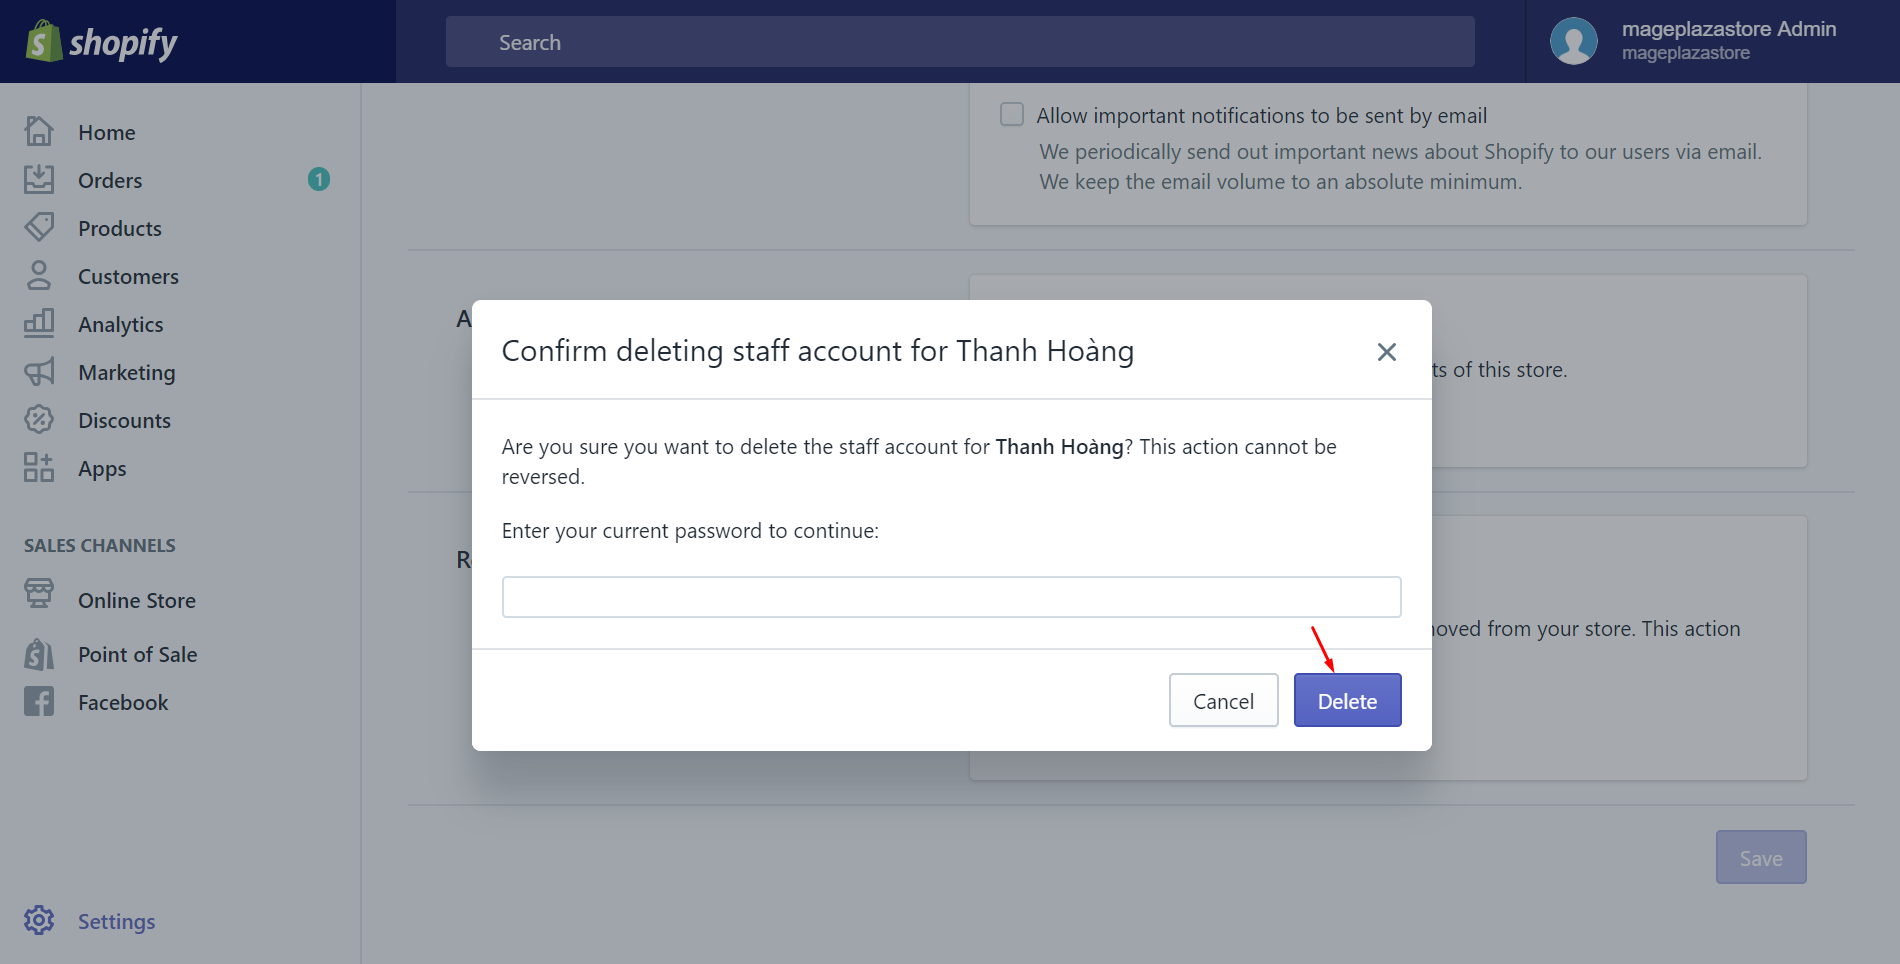 How to delete a staff account